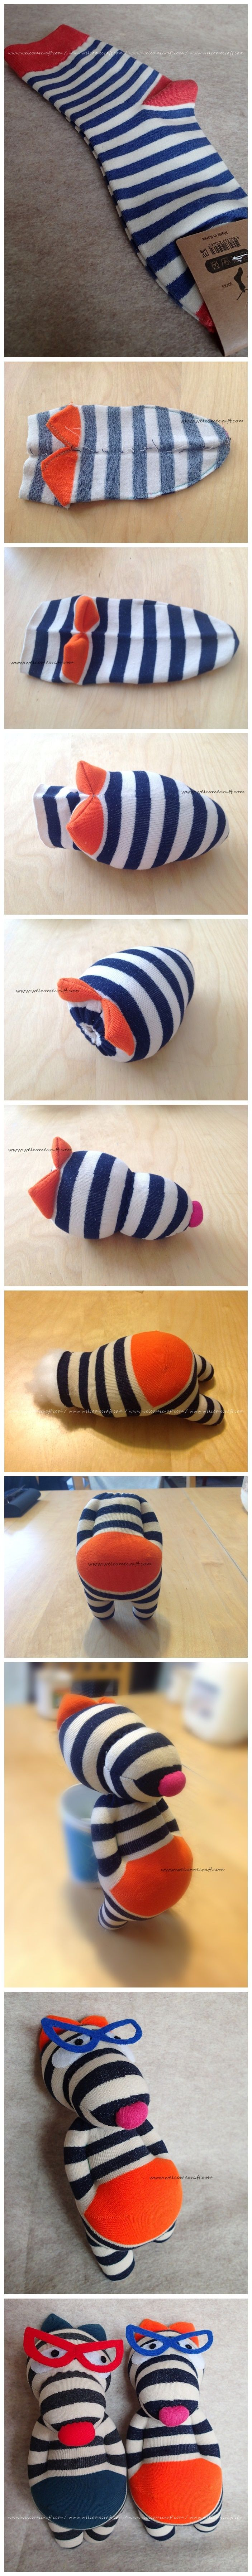 An ordinary stripes socks turned into a wolf doll.^^ Made by  - Melanie Park